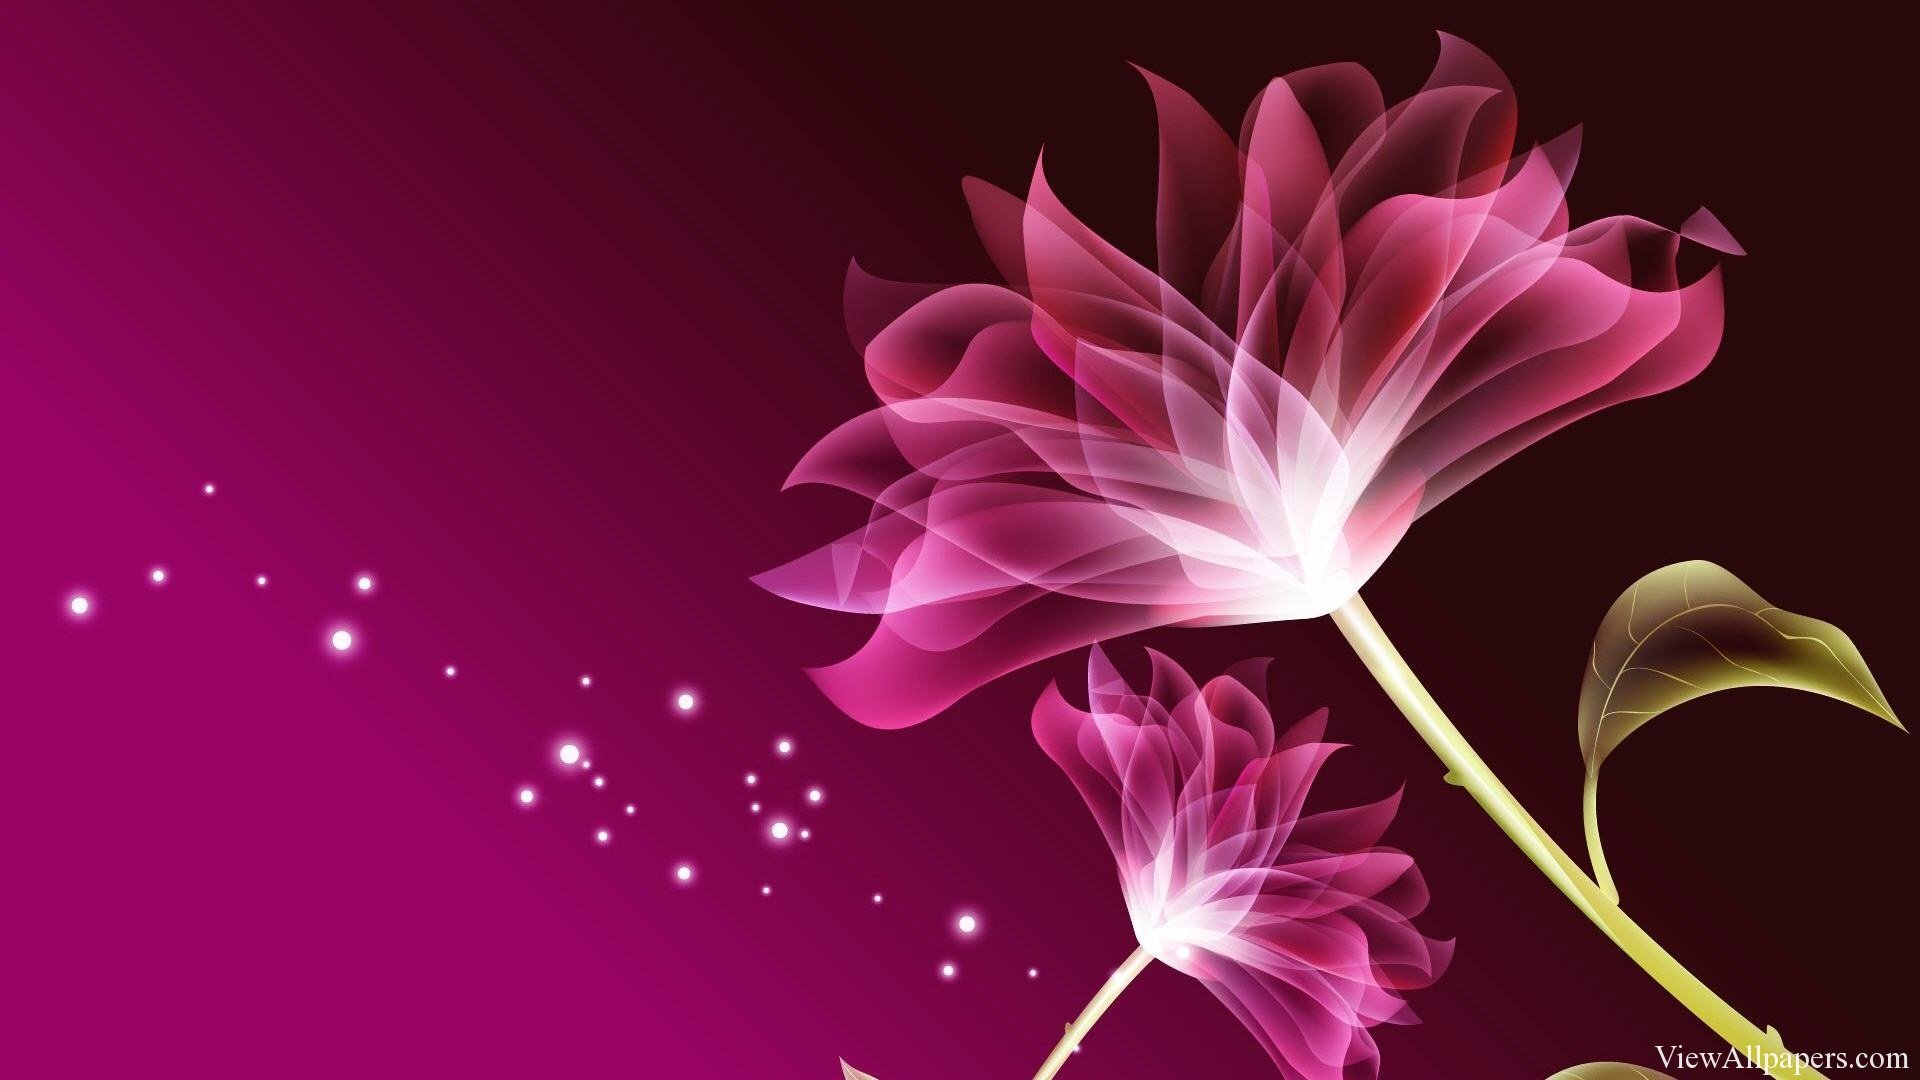 3d nature wallpaper for pc free download